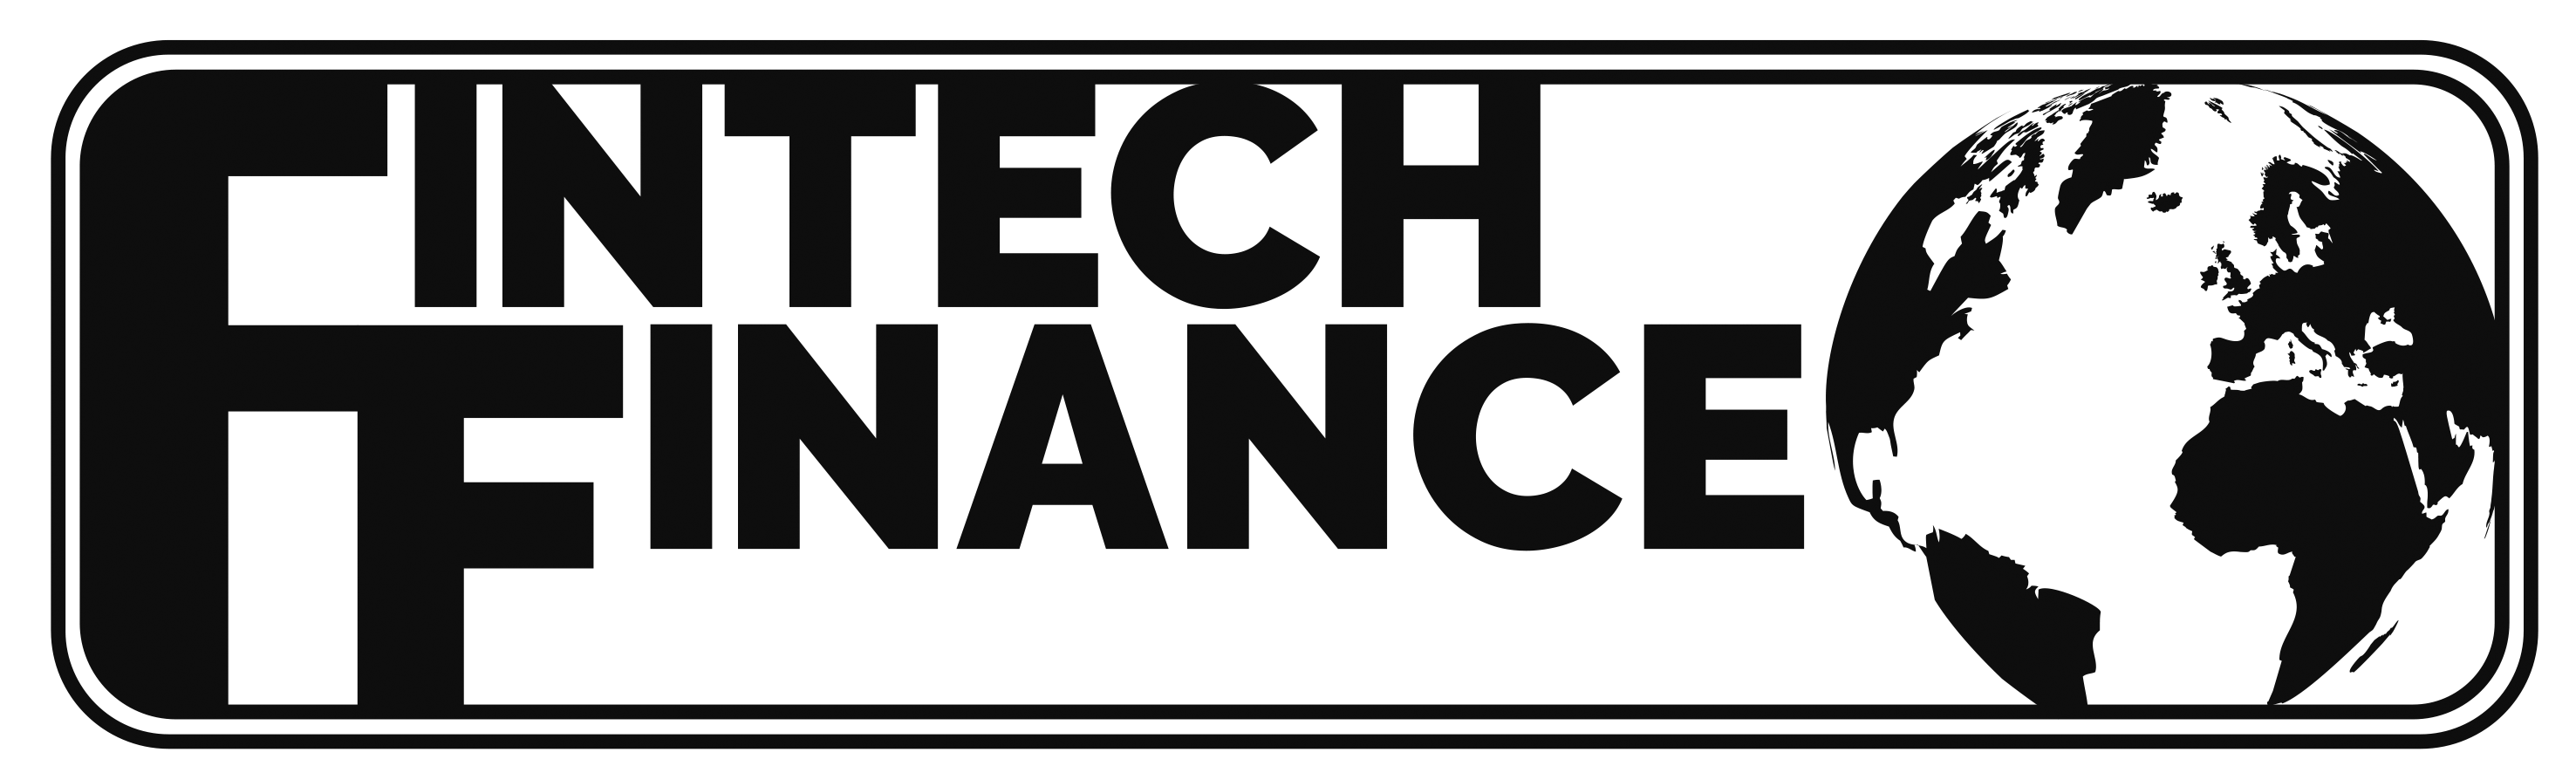 Fintech Finance – New Age Banking Confex 2019